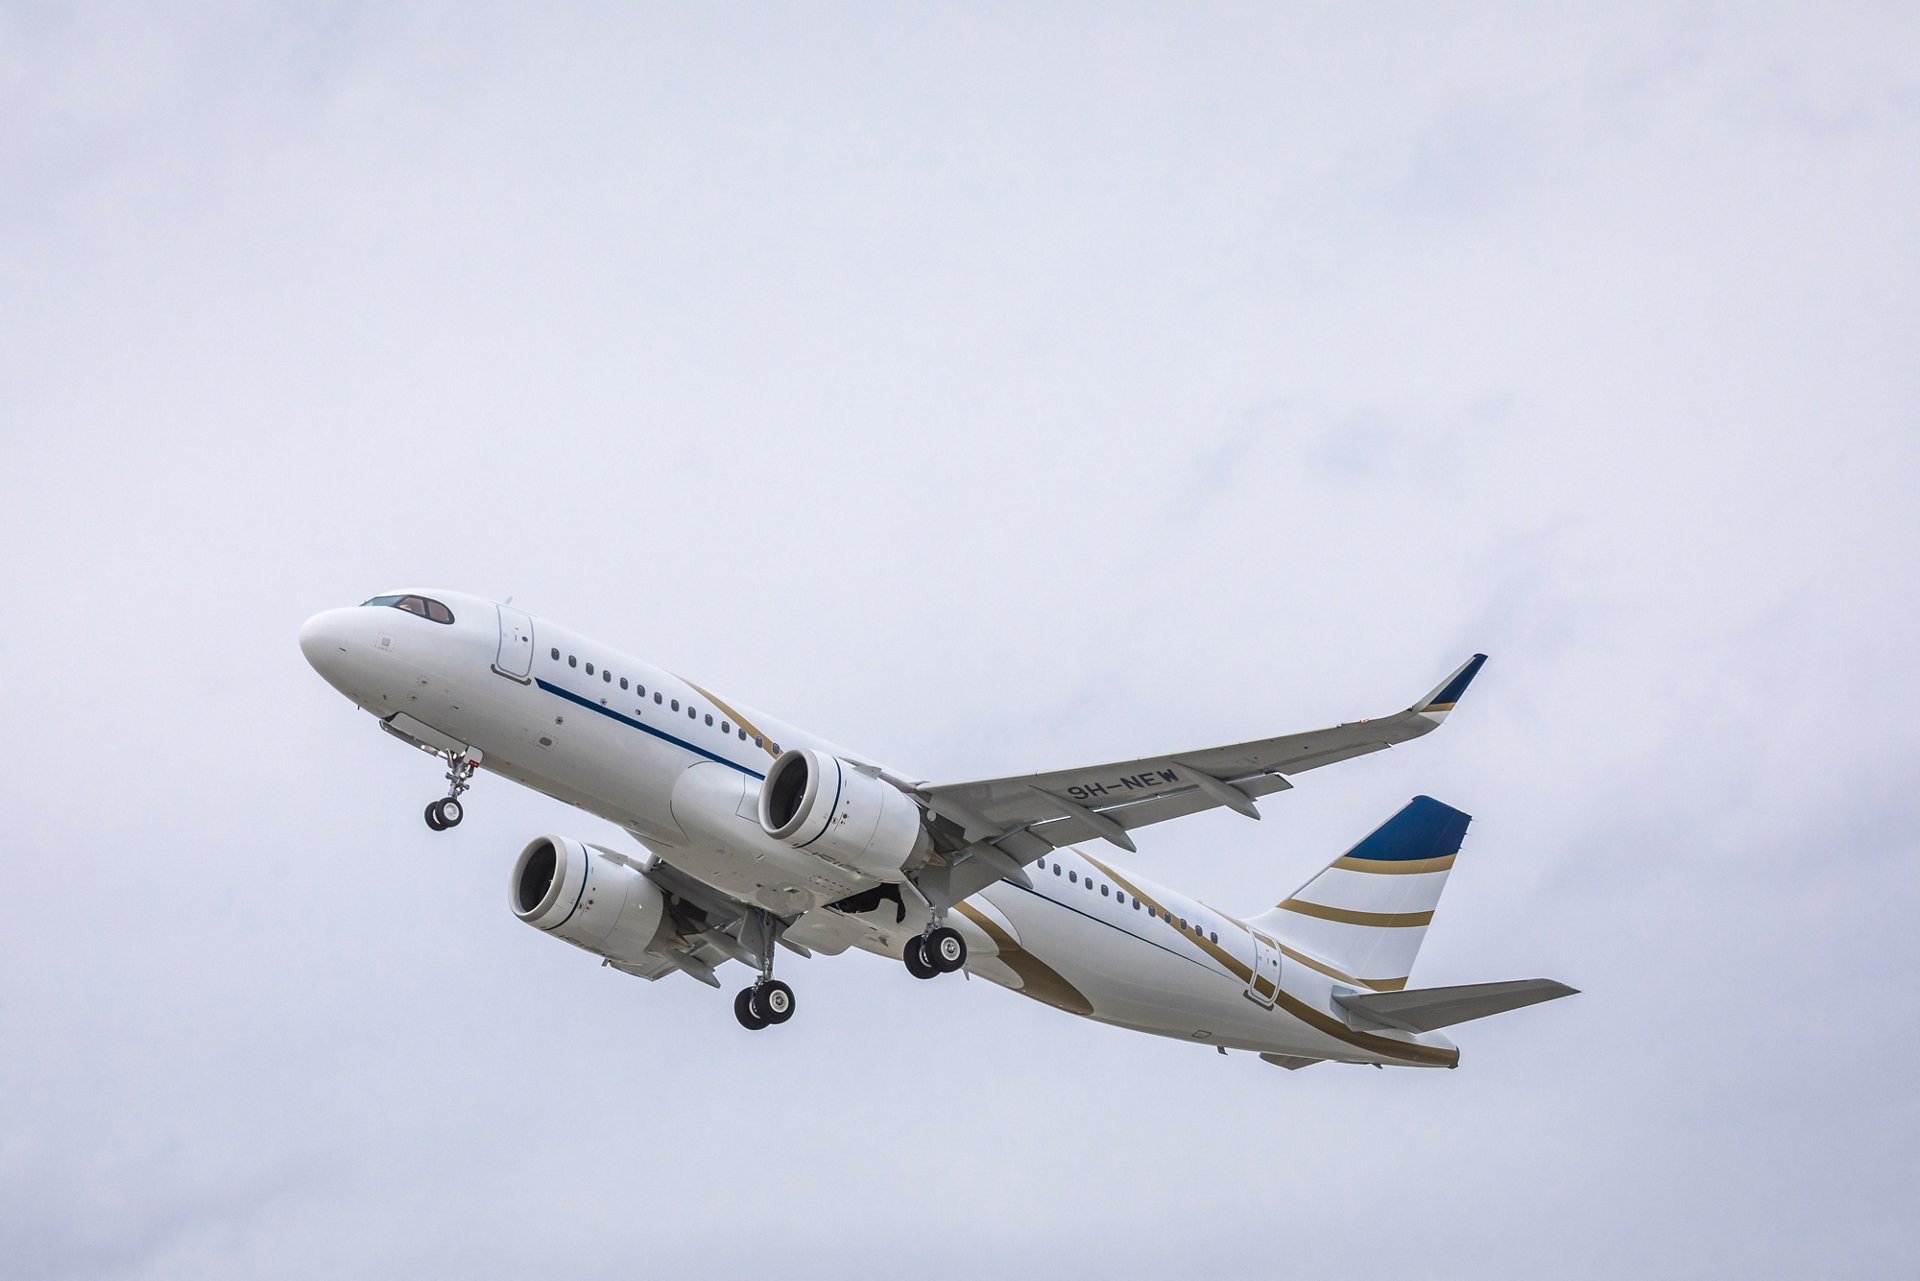 Comlux' first ACJ320neo is delivered